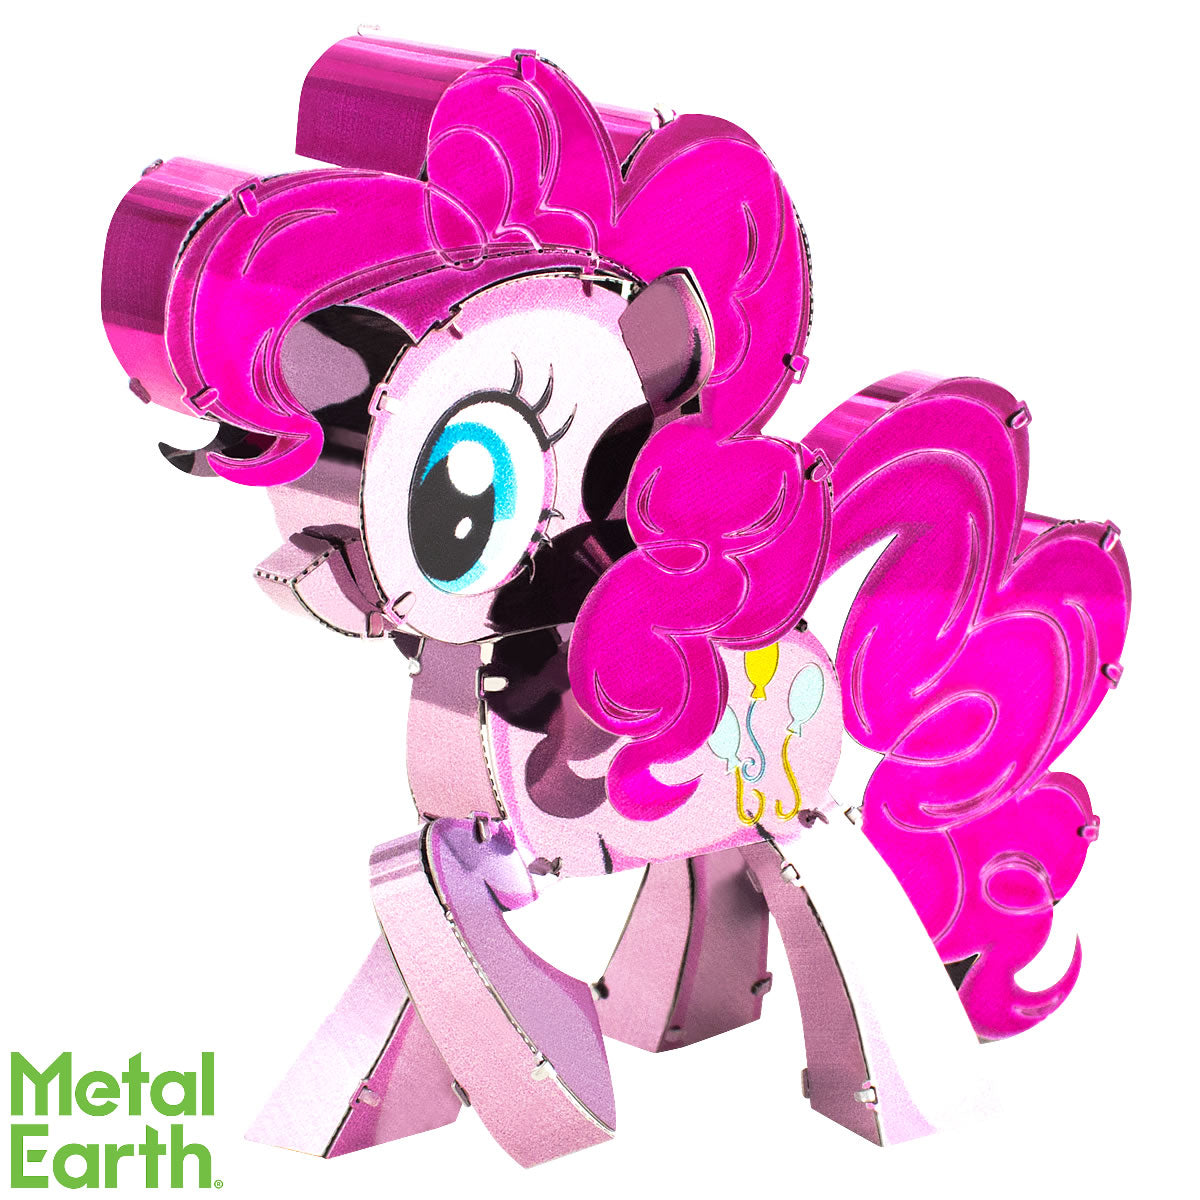 Fascinations Metal Earth 3D Laser Cut Model Kit My Little Pony - Pinkie Pie